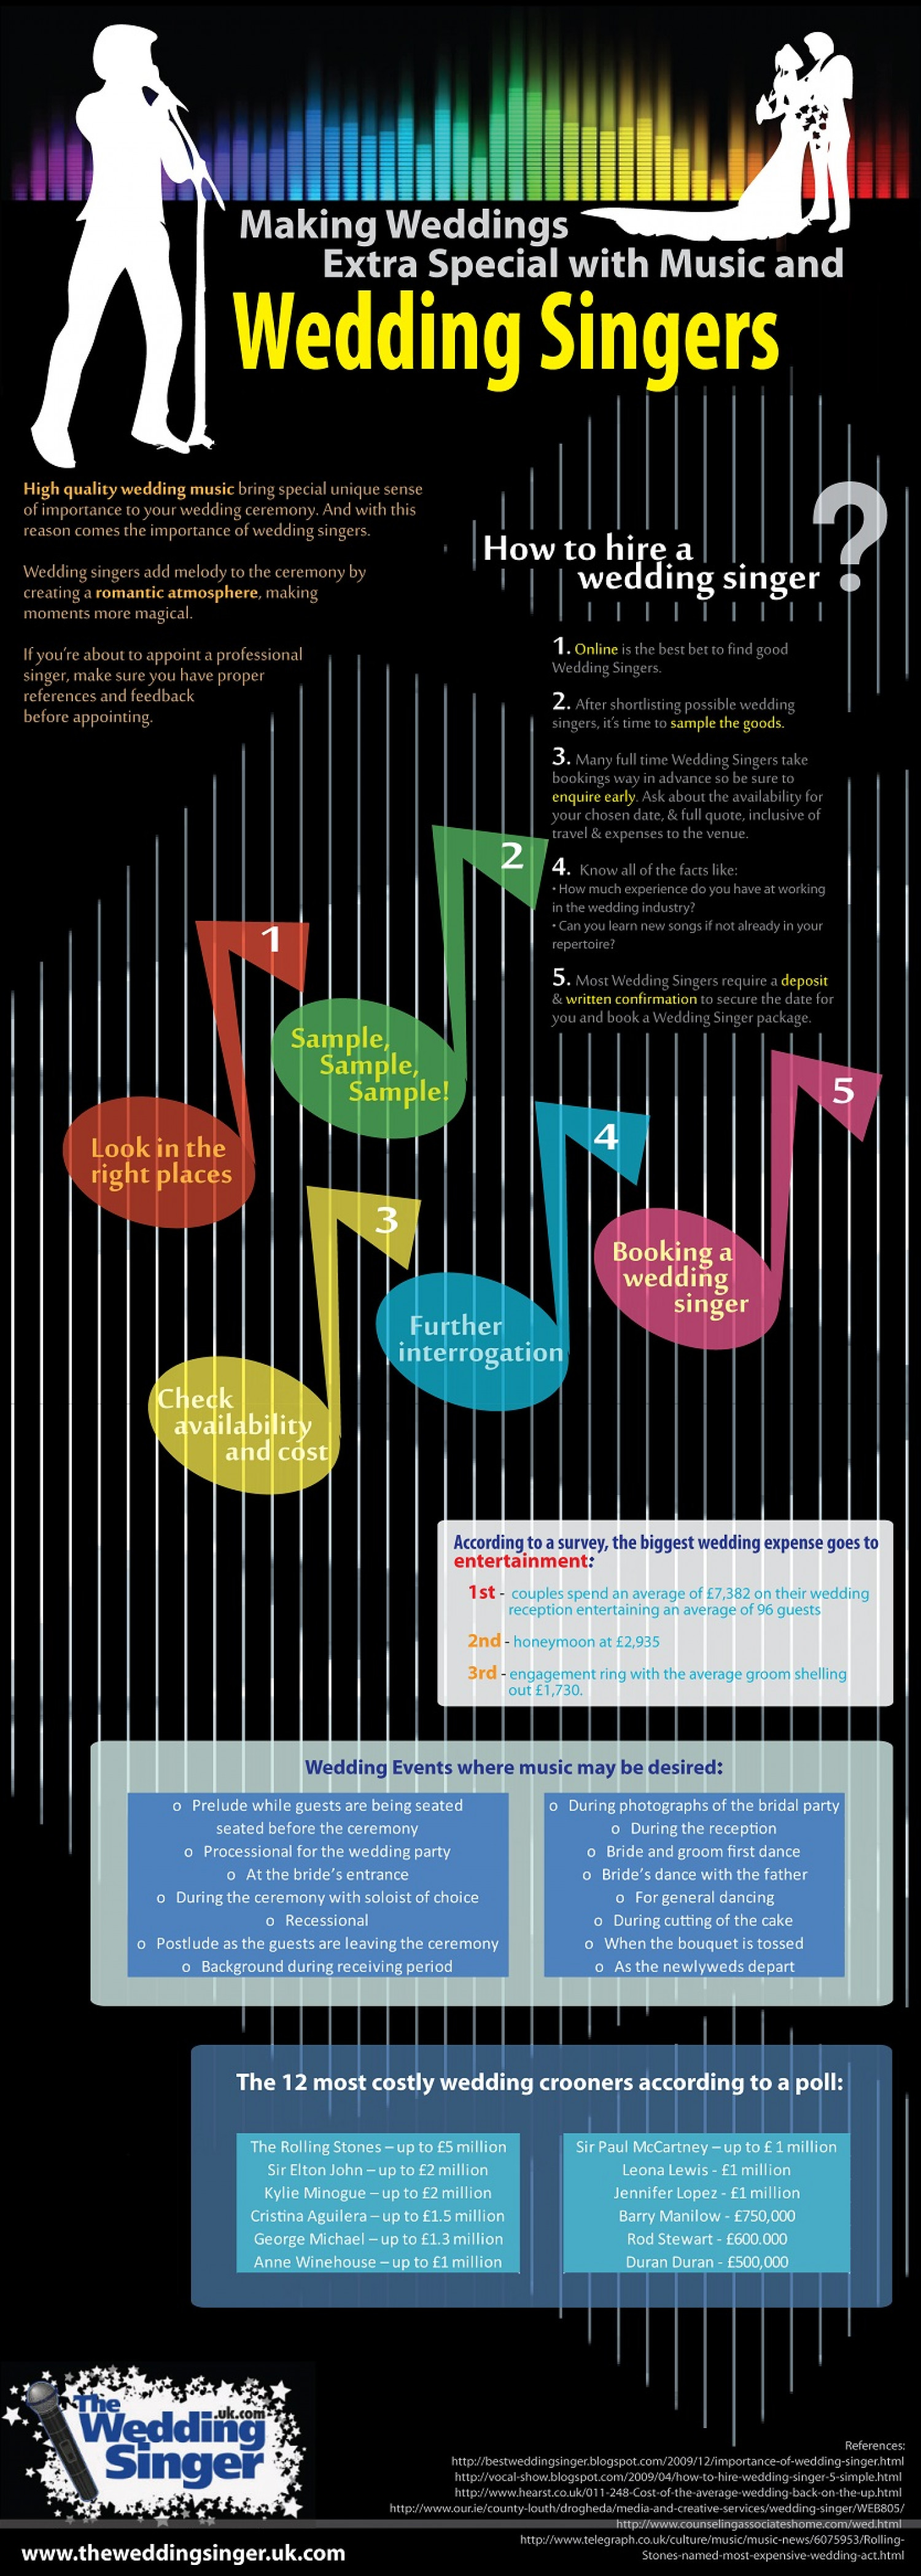 Wedding Singers: Spicing Up Your Big Day and Making it More Memorable Infographic